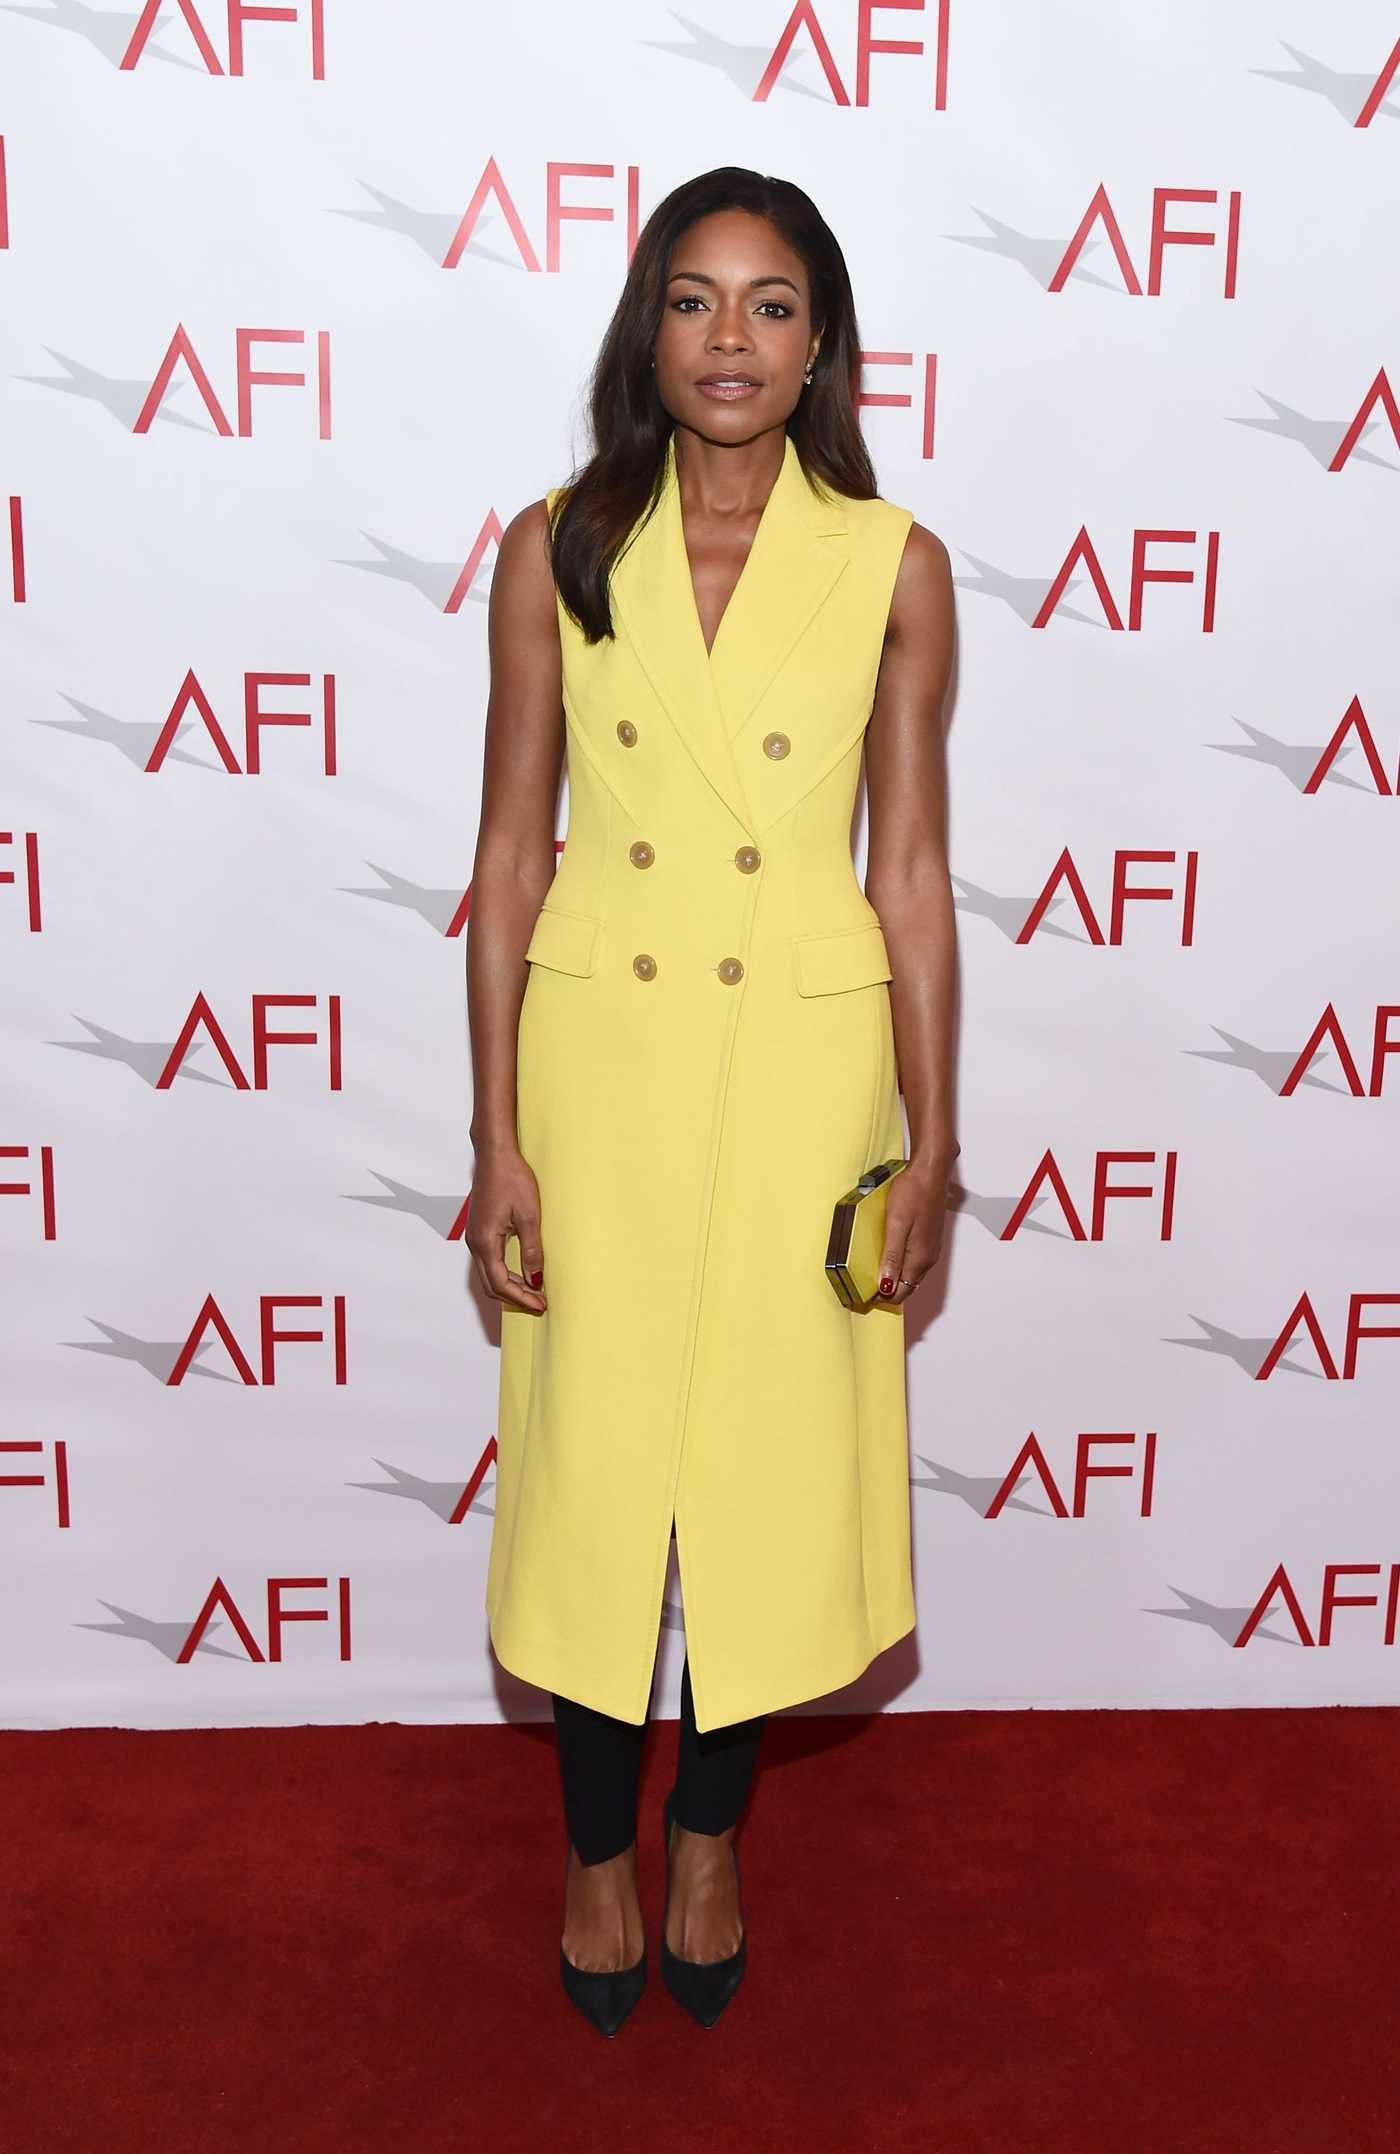 Naomie Harris at AFI Awards Luncheon in Los Angeles 01/06/2017